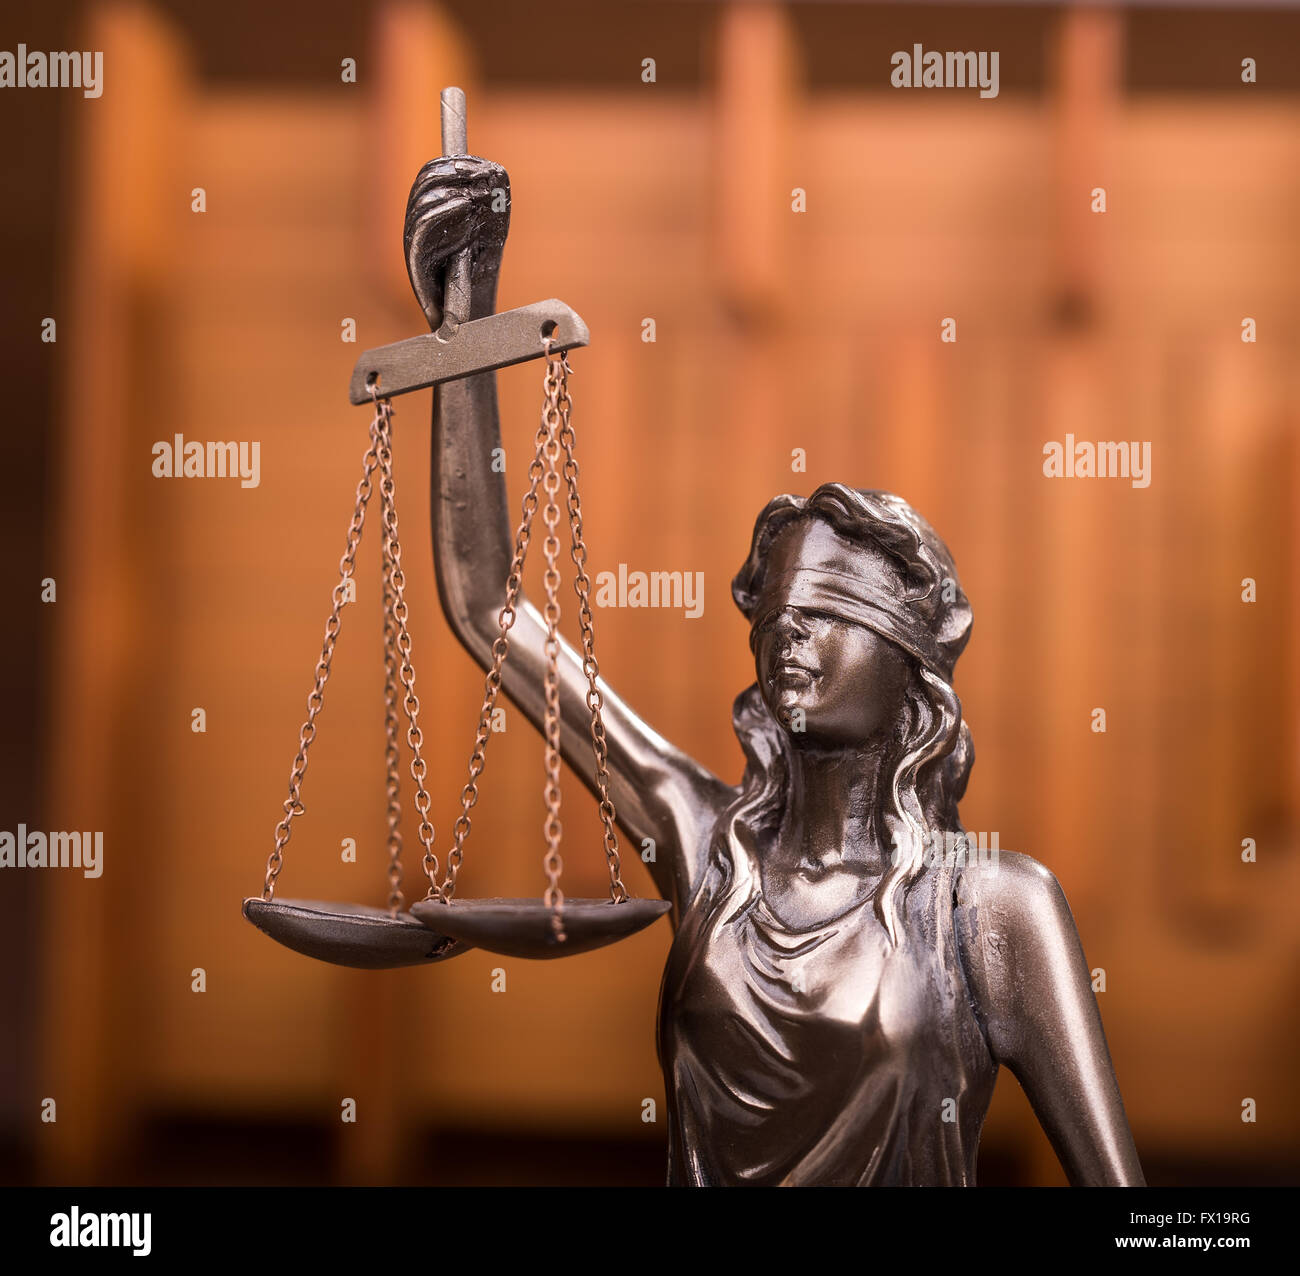 Statue of justice,law concept - Stock Image